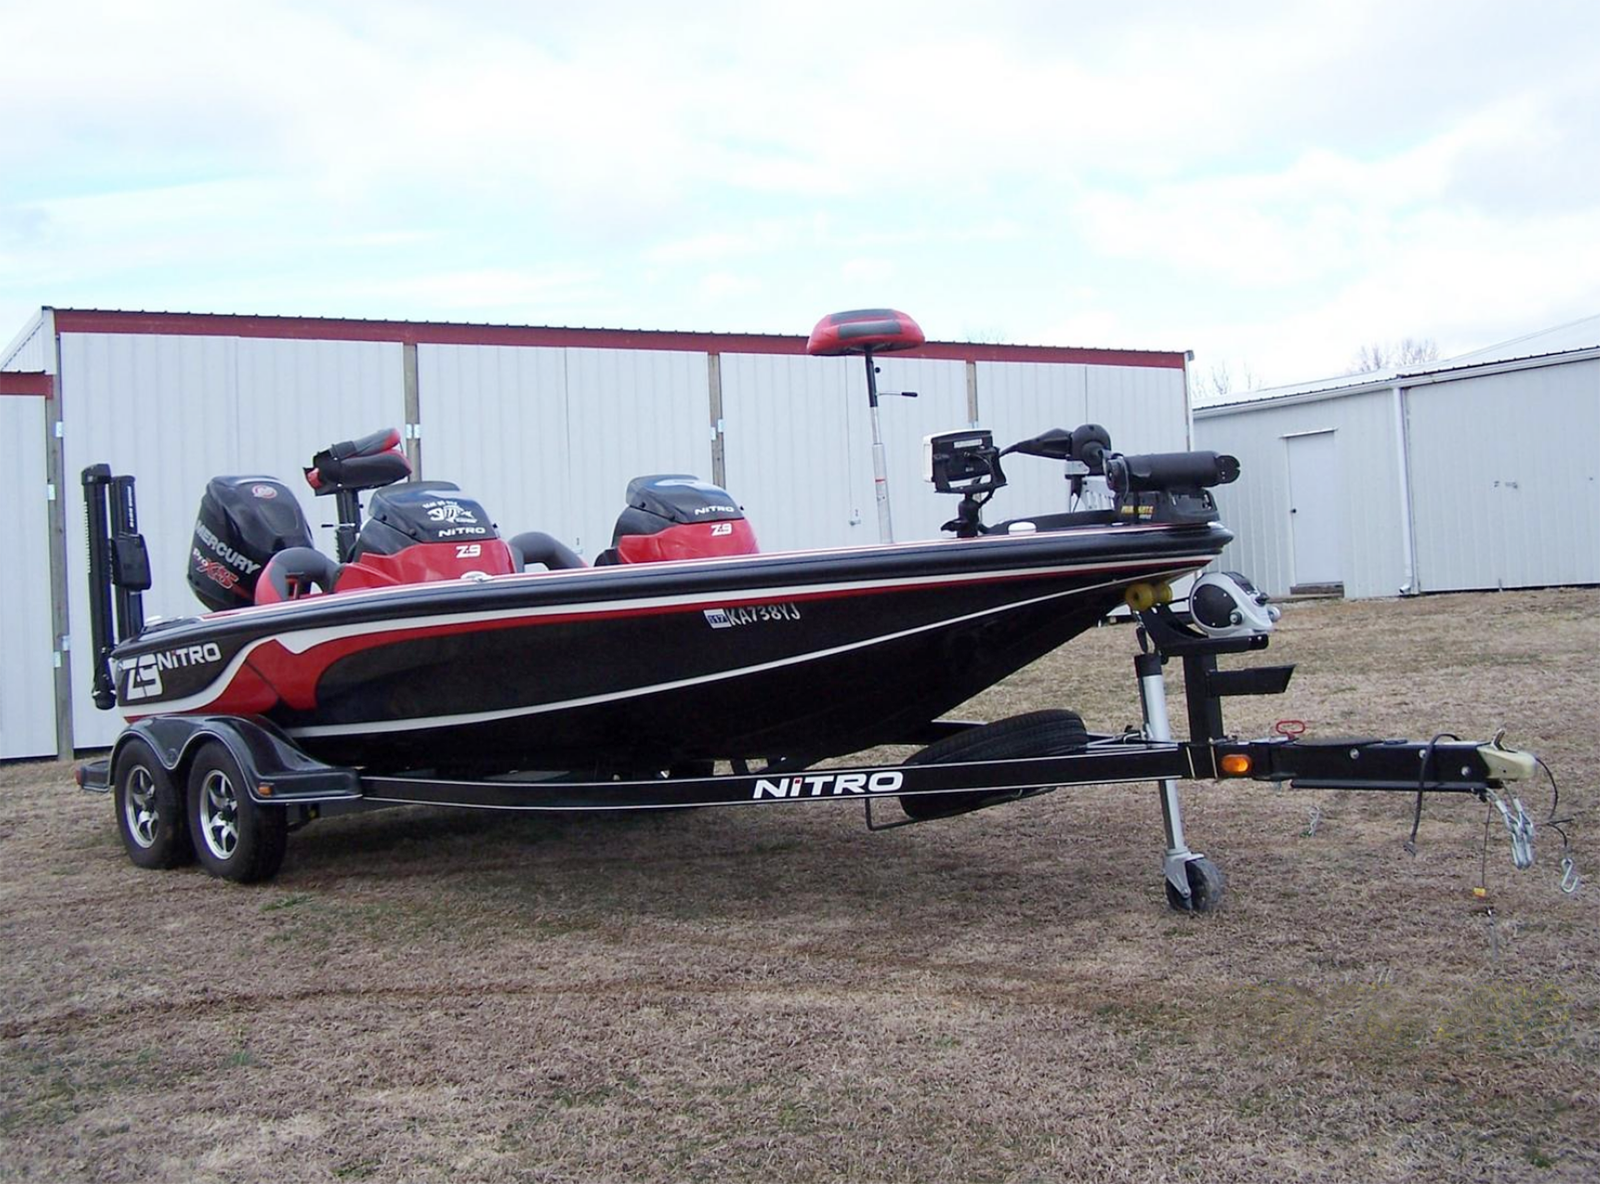 2014 Nitro Z9 SC W/ 250 Mercury Engine